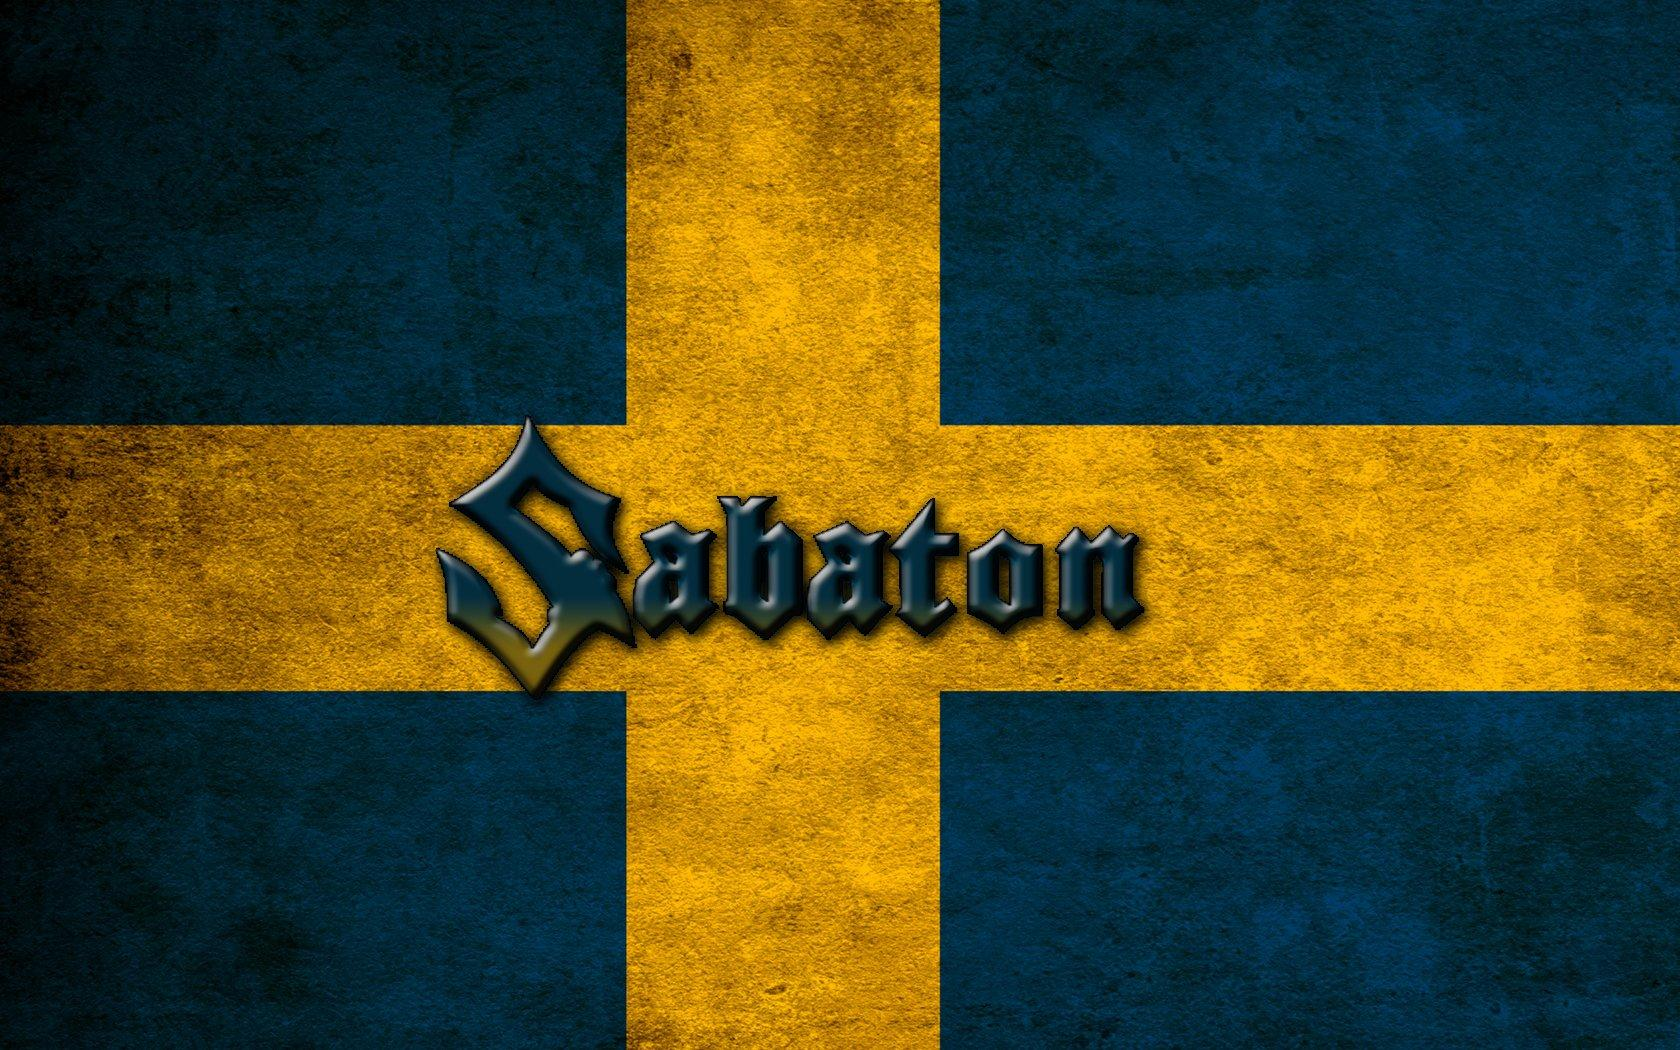 Sabaton Swedish Flag Wallpapers